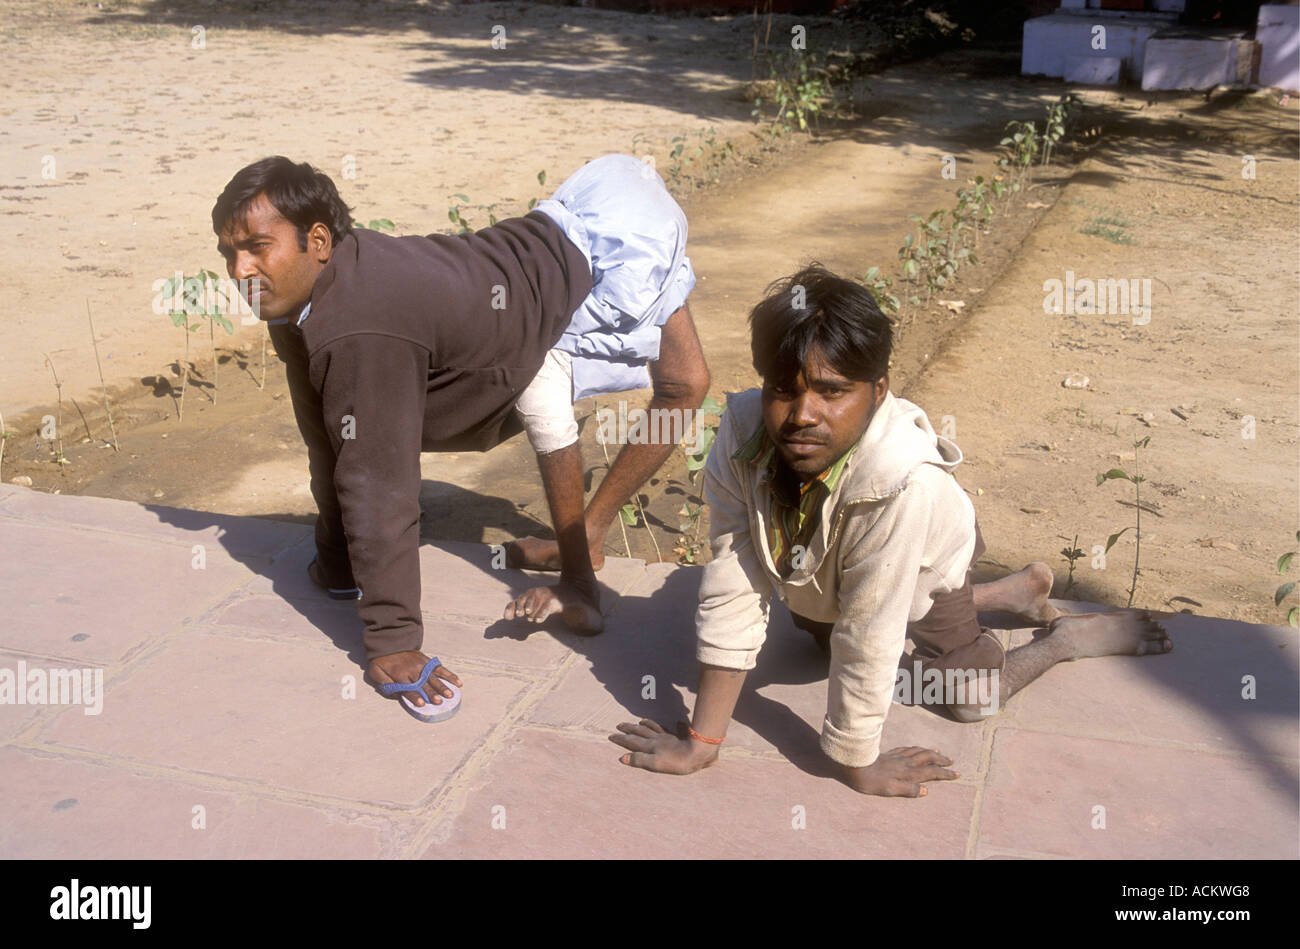 https://c8.alamy.com/comp/ACKWG8/two-young-men-who-have-been-crippled-by-polio-agra-uttar-pradesh-india-ACKWG8.jpg